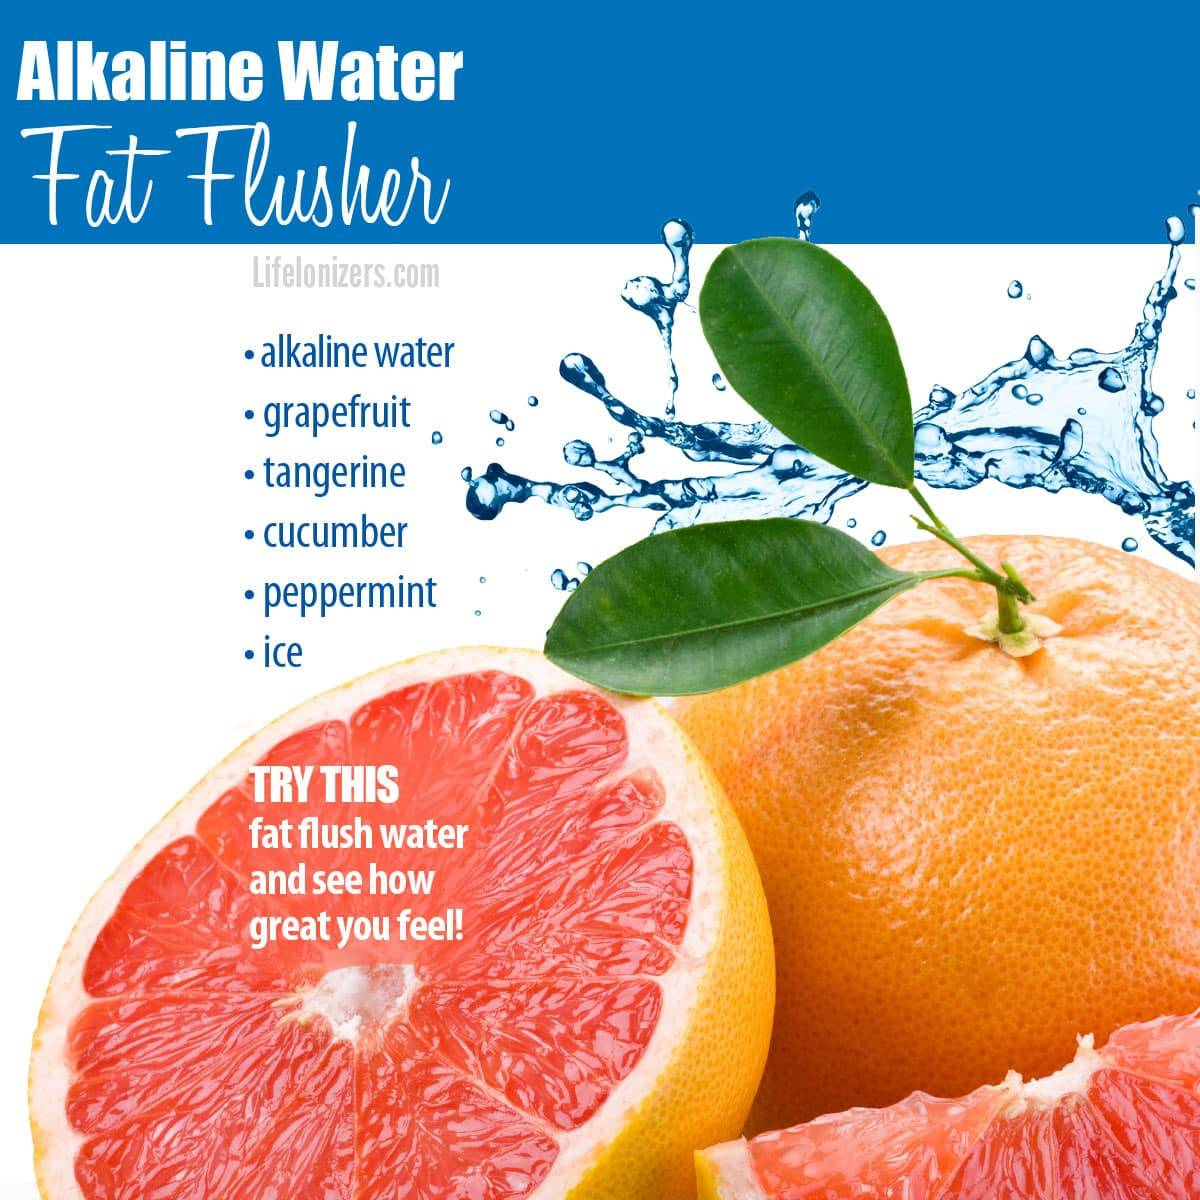 alkaline water fat flusher infographic